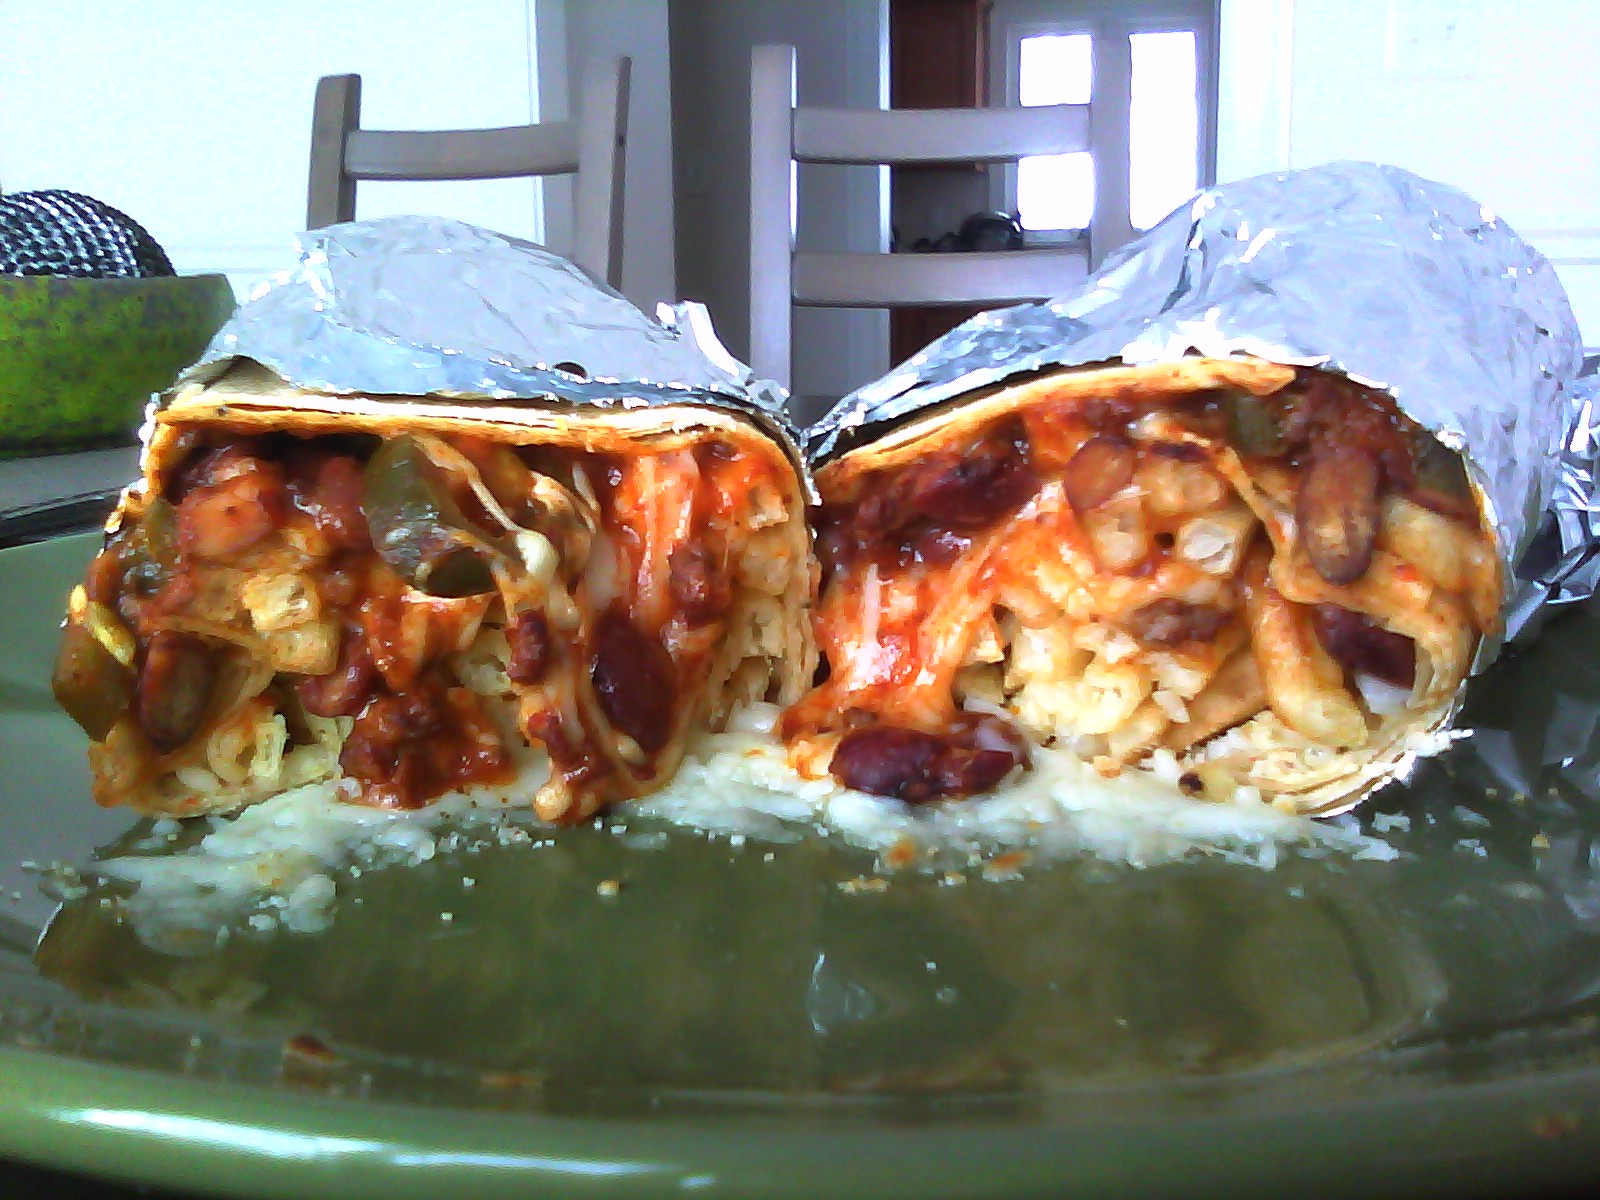 Leftover Chili Burritos